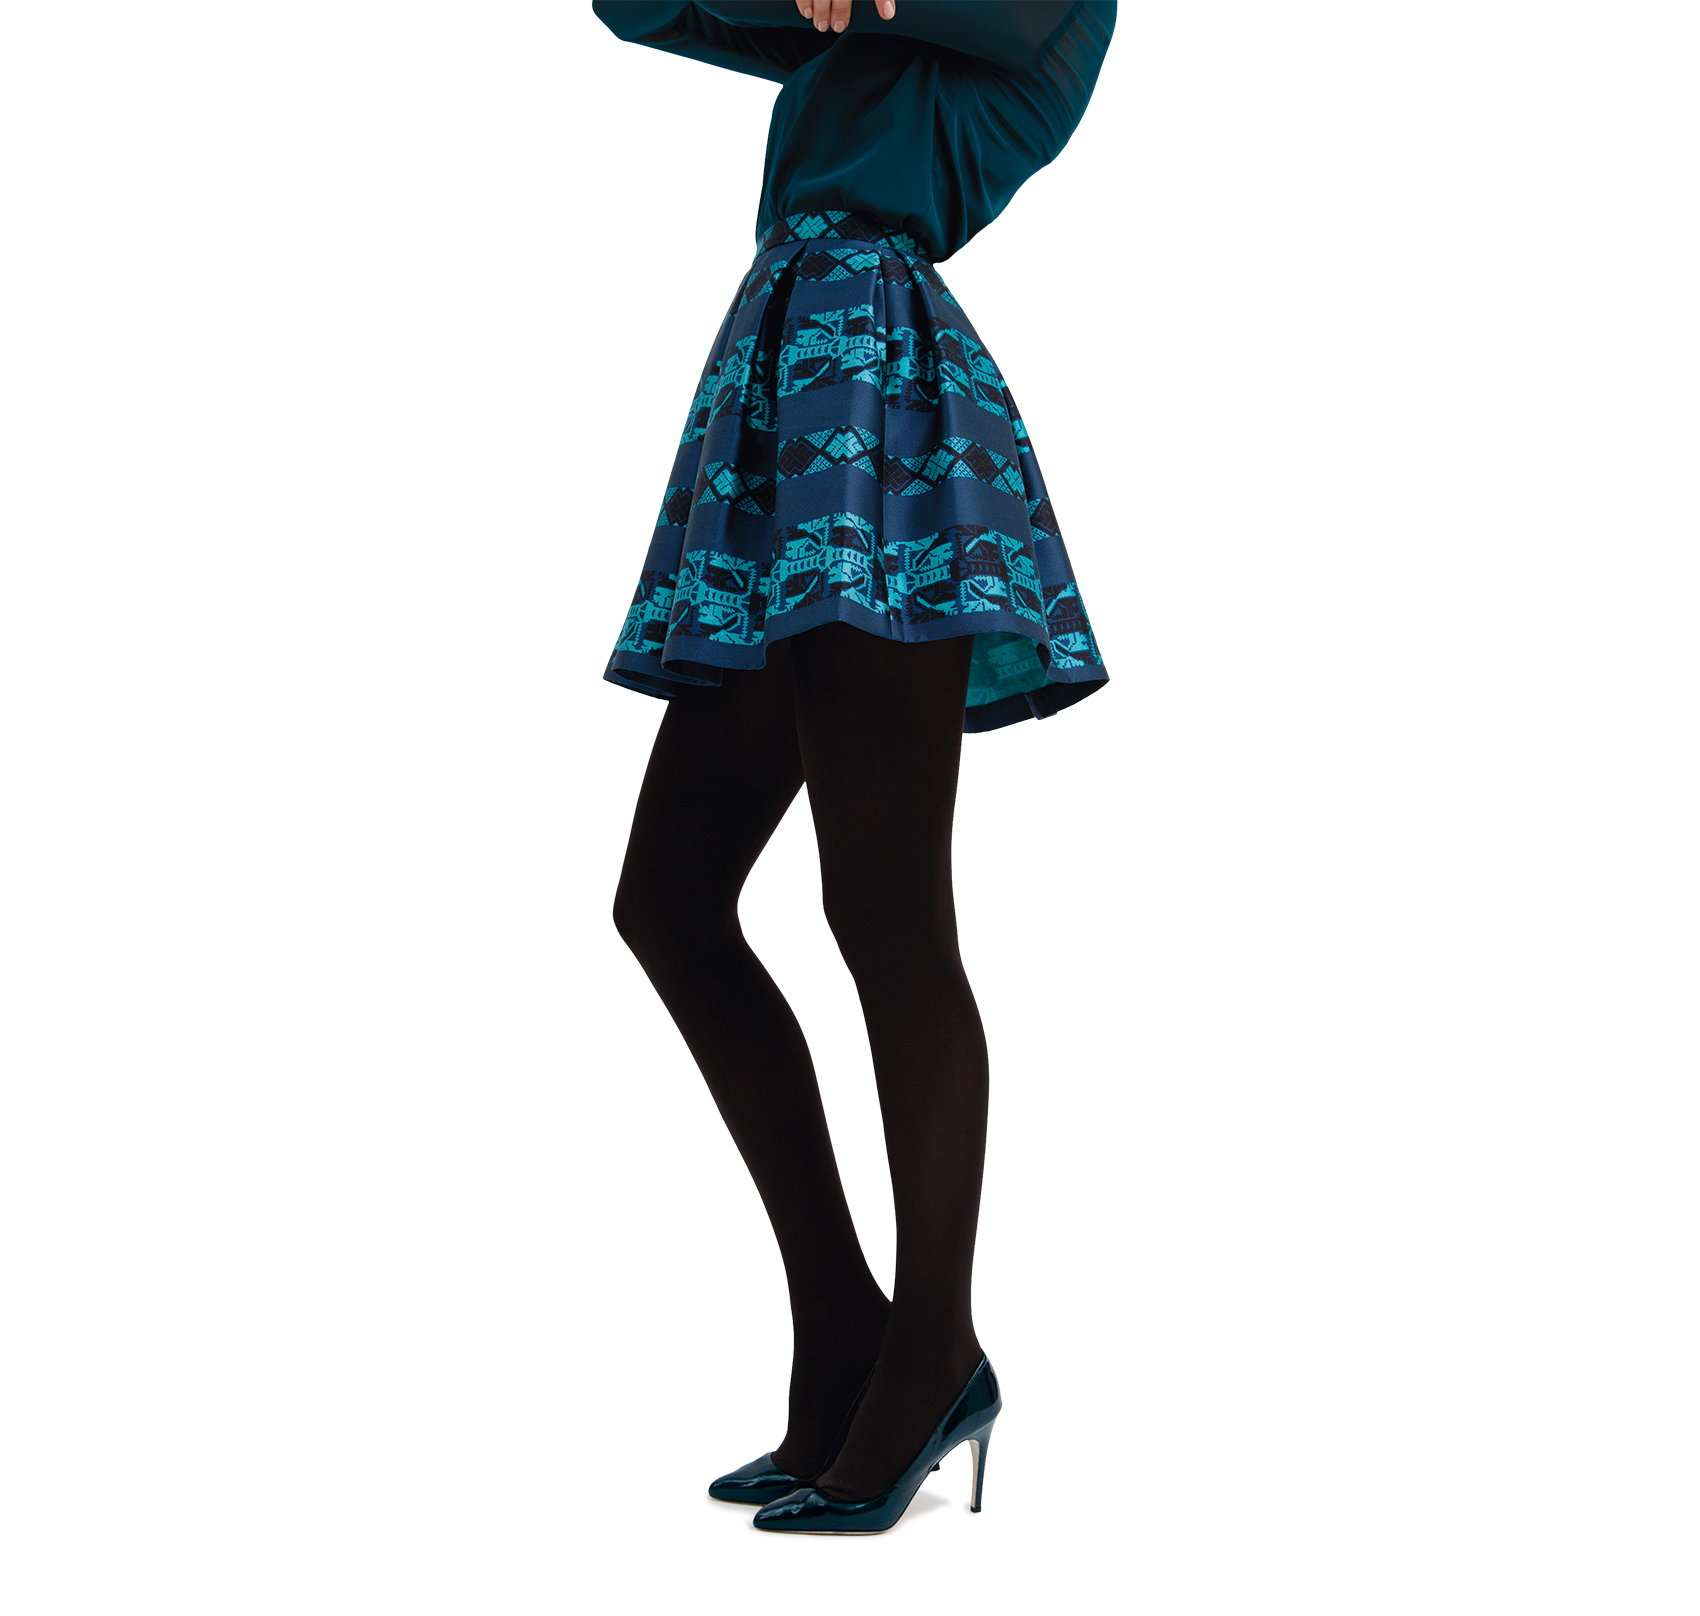 Tights and Hosiery = Scrimp